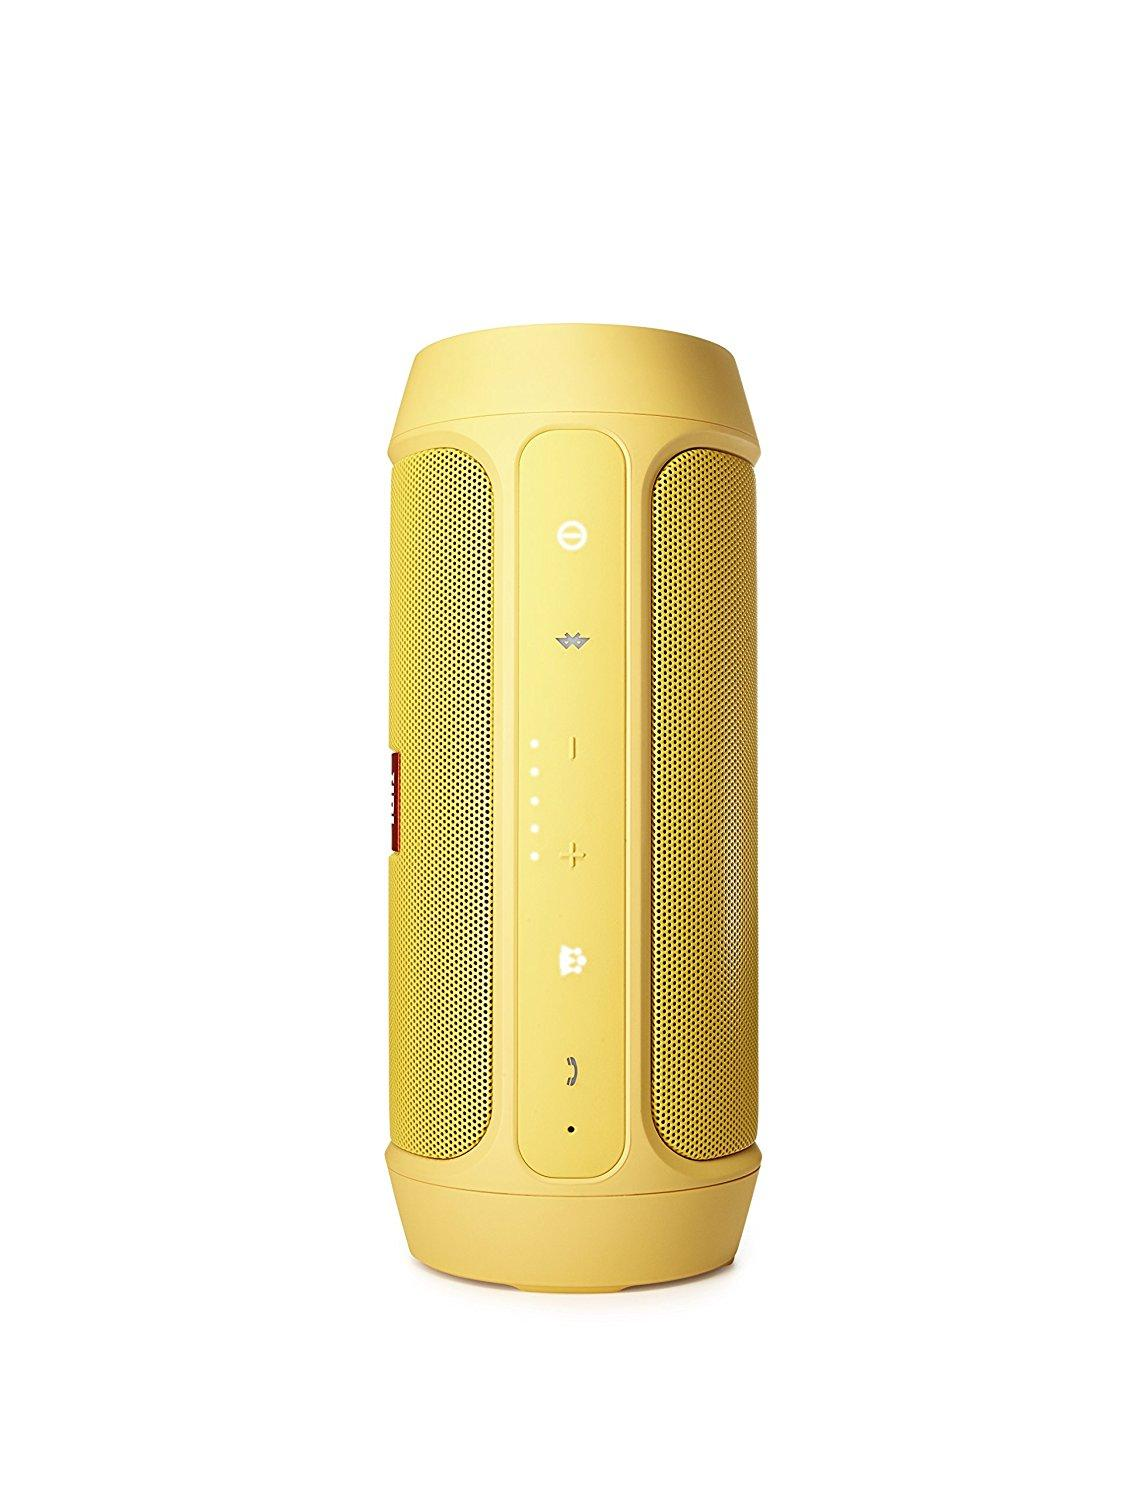 Fitur Jbl Charge 2 Bluetooth Speaker With Powerful Bass Yellow 3 Merah Original